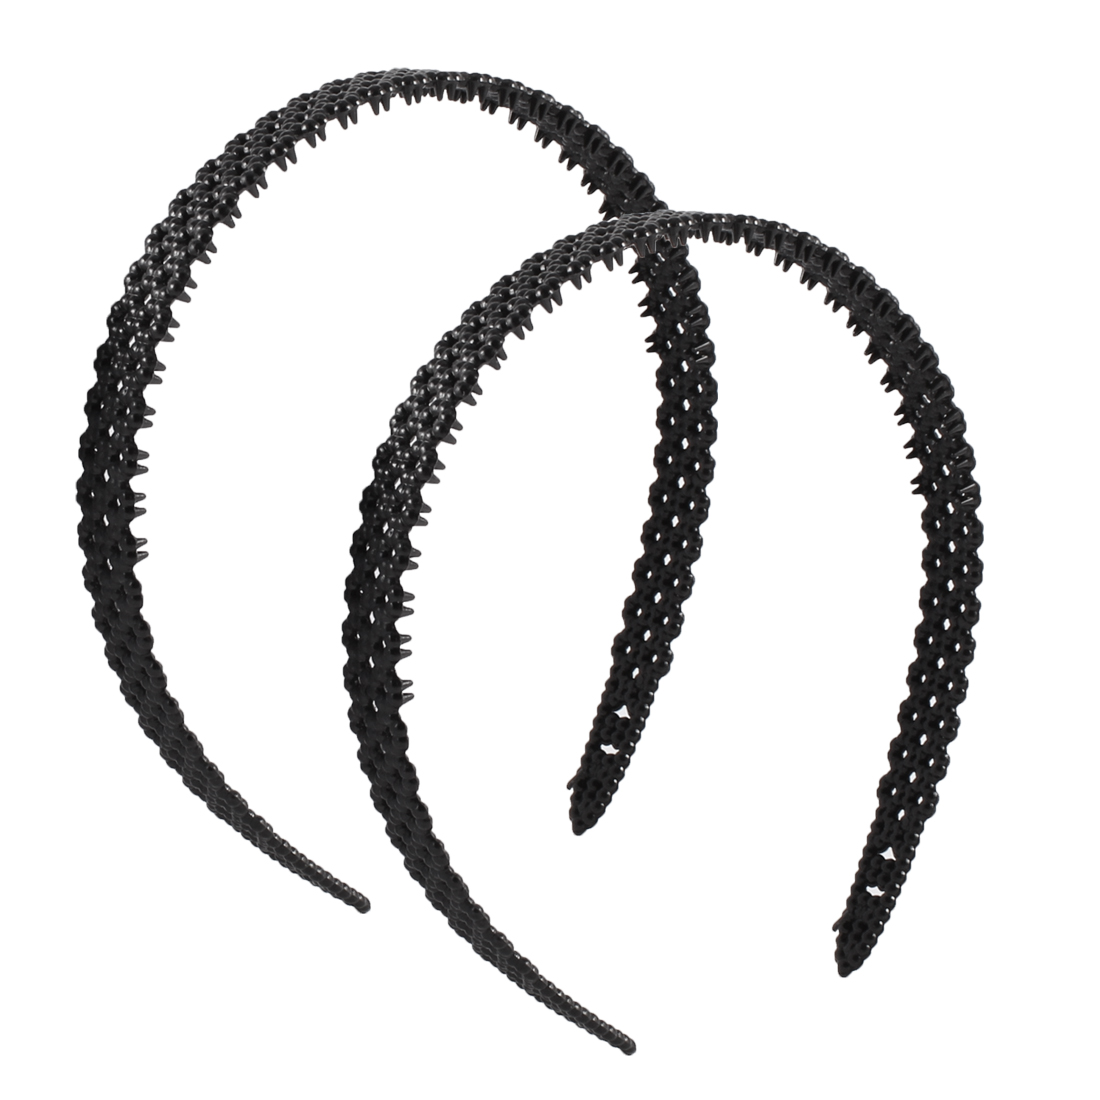 Hollow Out Design Plastic DIY Hairstyle Black Hairband Hair Hoop 2 Pcs for Lady